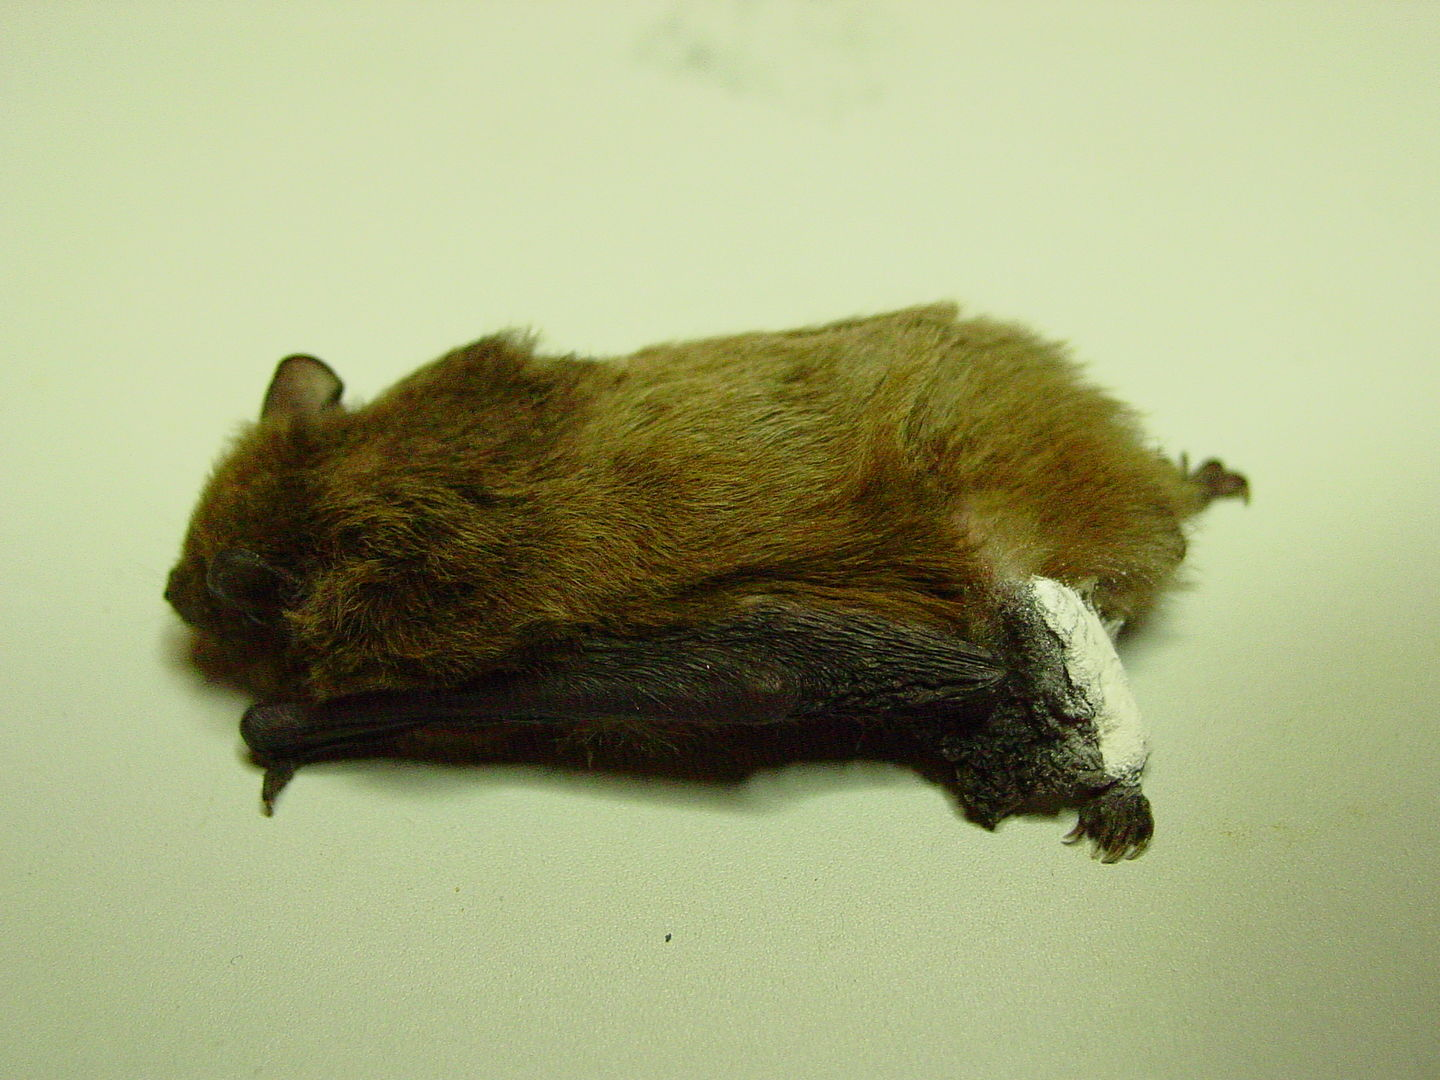 Das Foto zeigt eine Fledermaus mit Hinterbeinschiene, die beim Umstapeln eines Kaminholzstapels verletzt wurde. // The photo shows a bat with a hind leg splint injured while stacking a firewood stack.